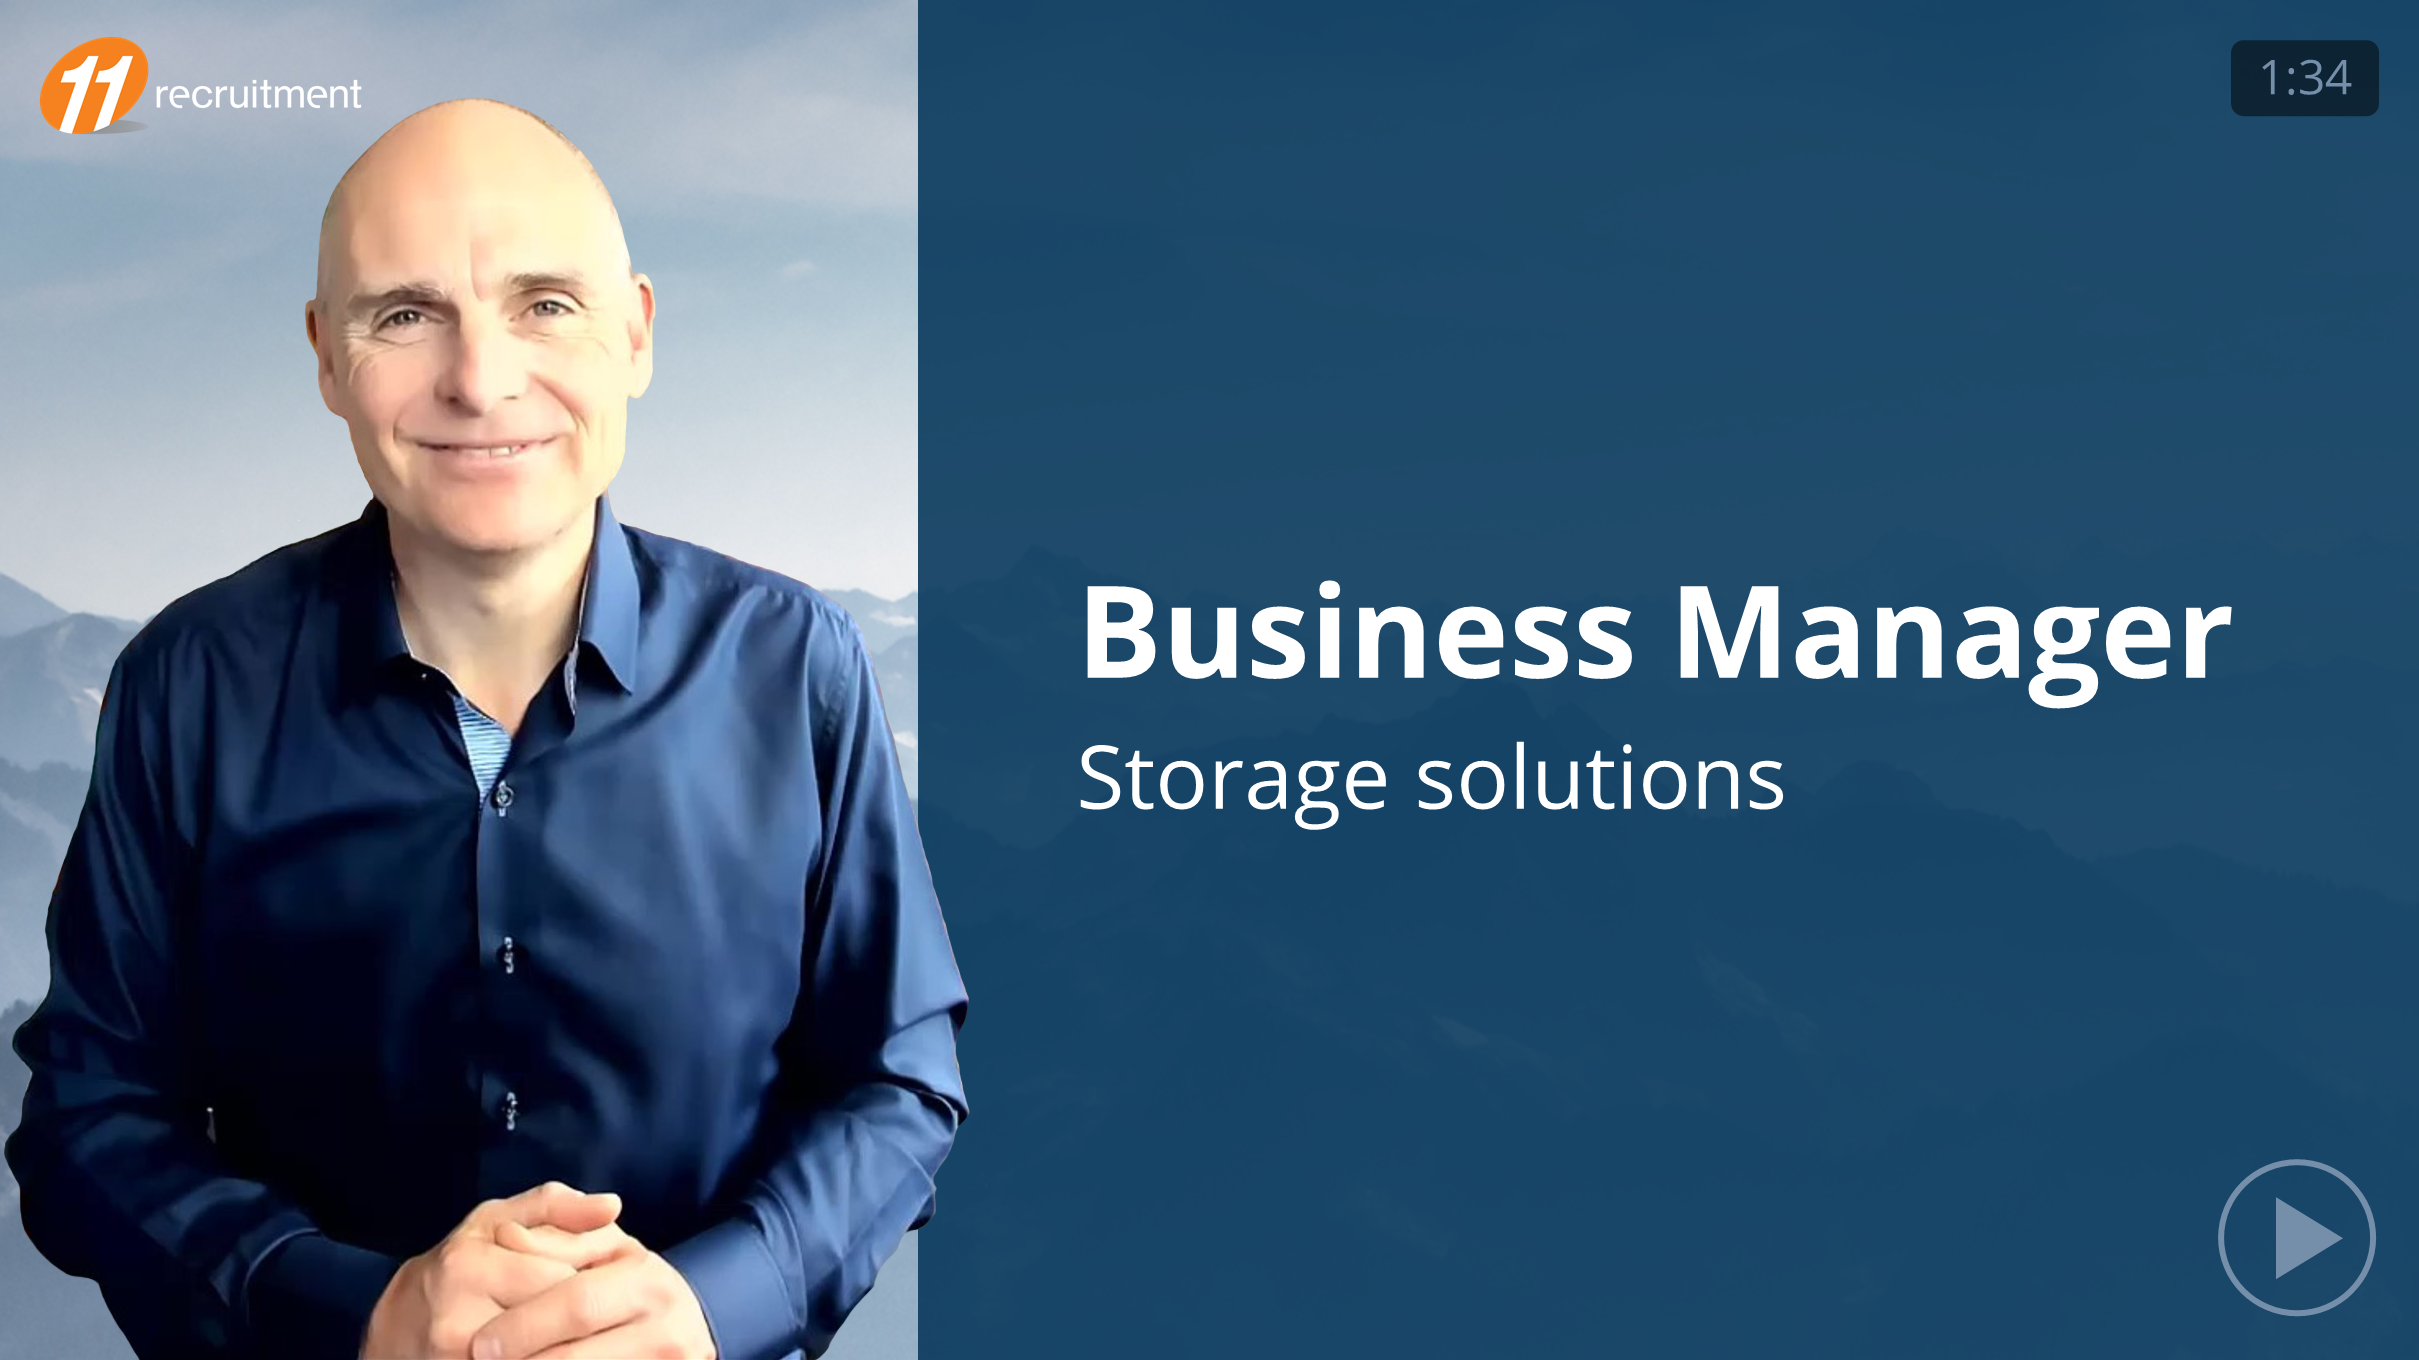 Business Manager - Storage